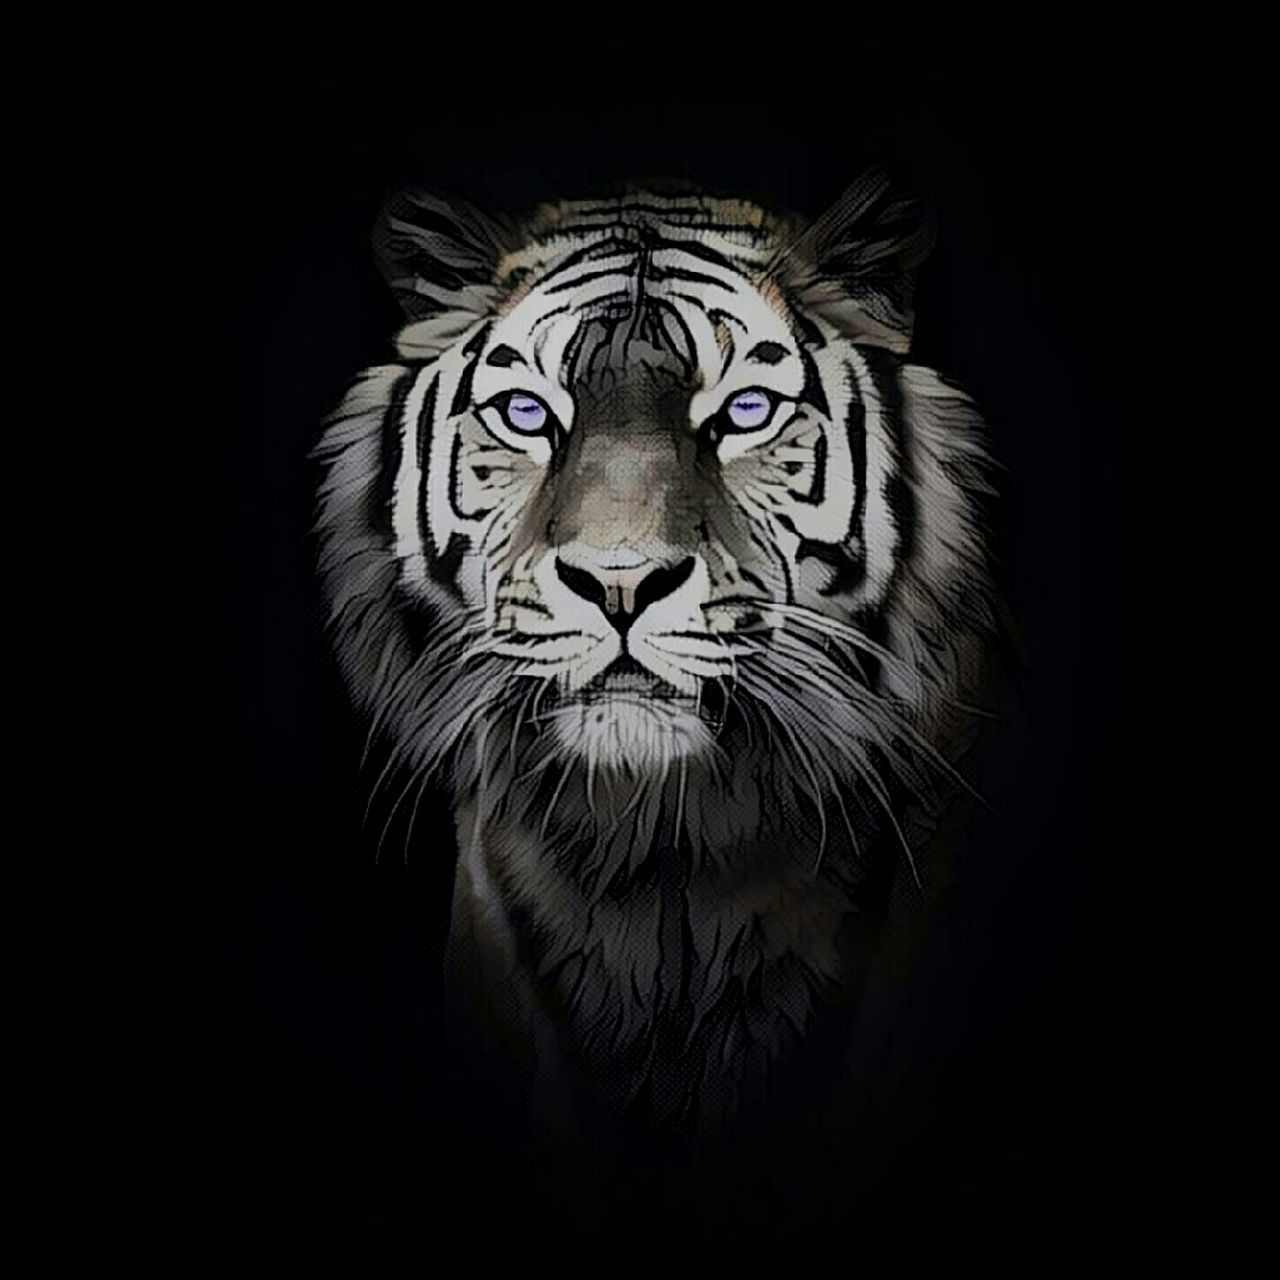 black background, tiger, one animal, looking at camera, animal wildlife, portrait, no people, animals in the wild, animal themes, close-up, nature, mammal, day